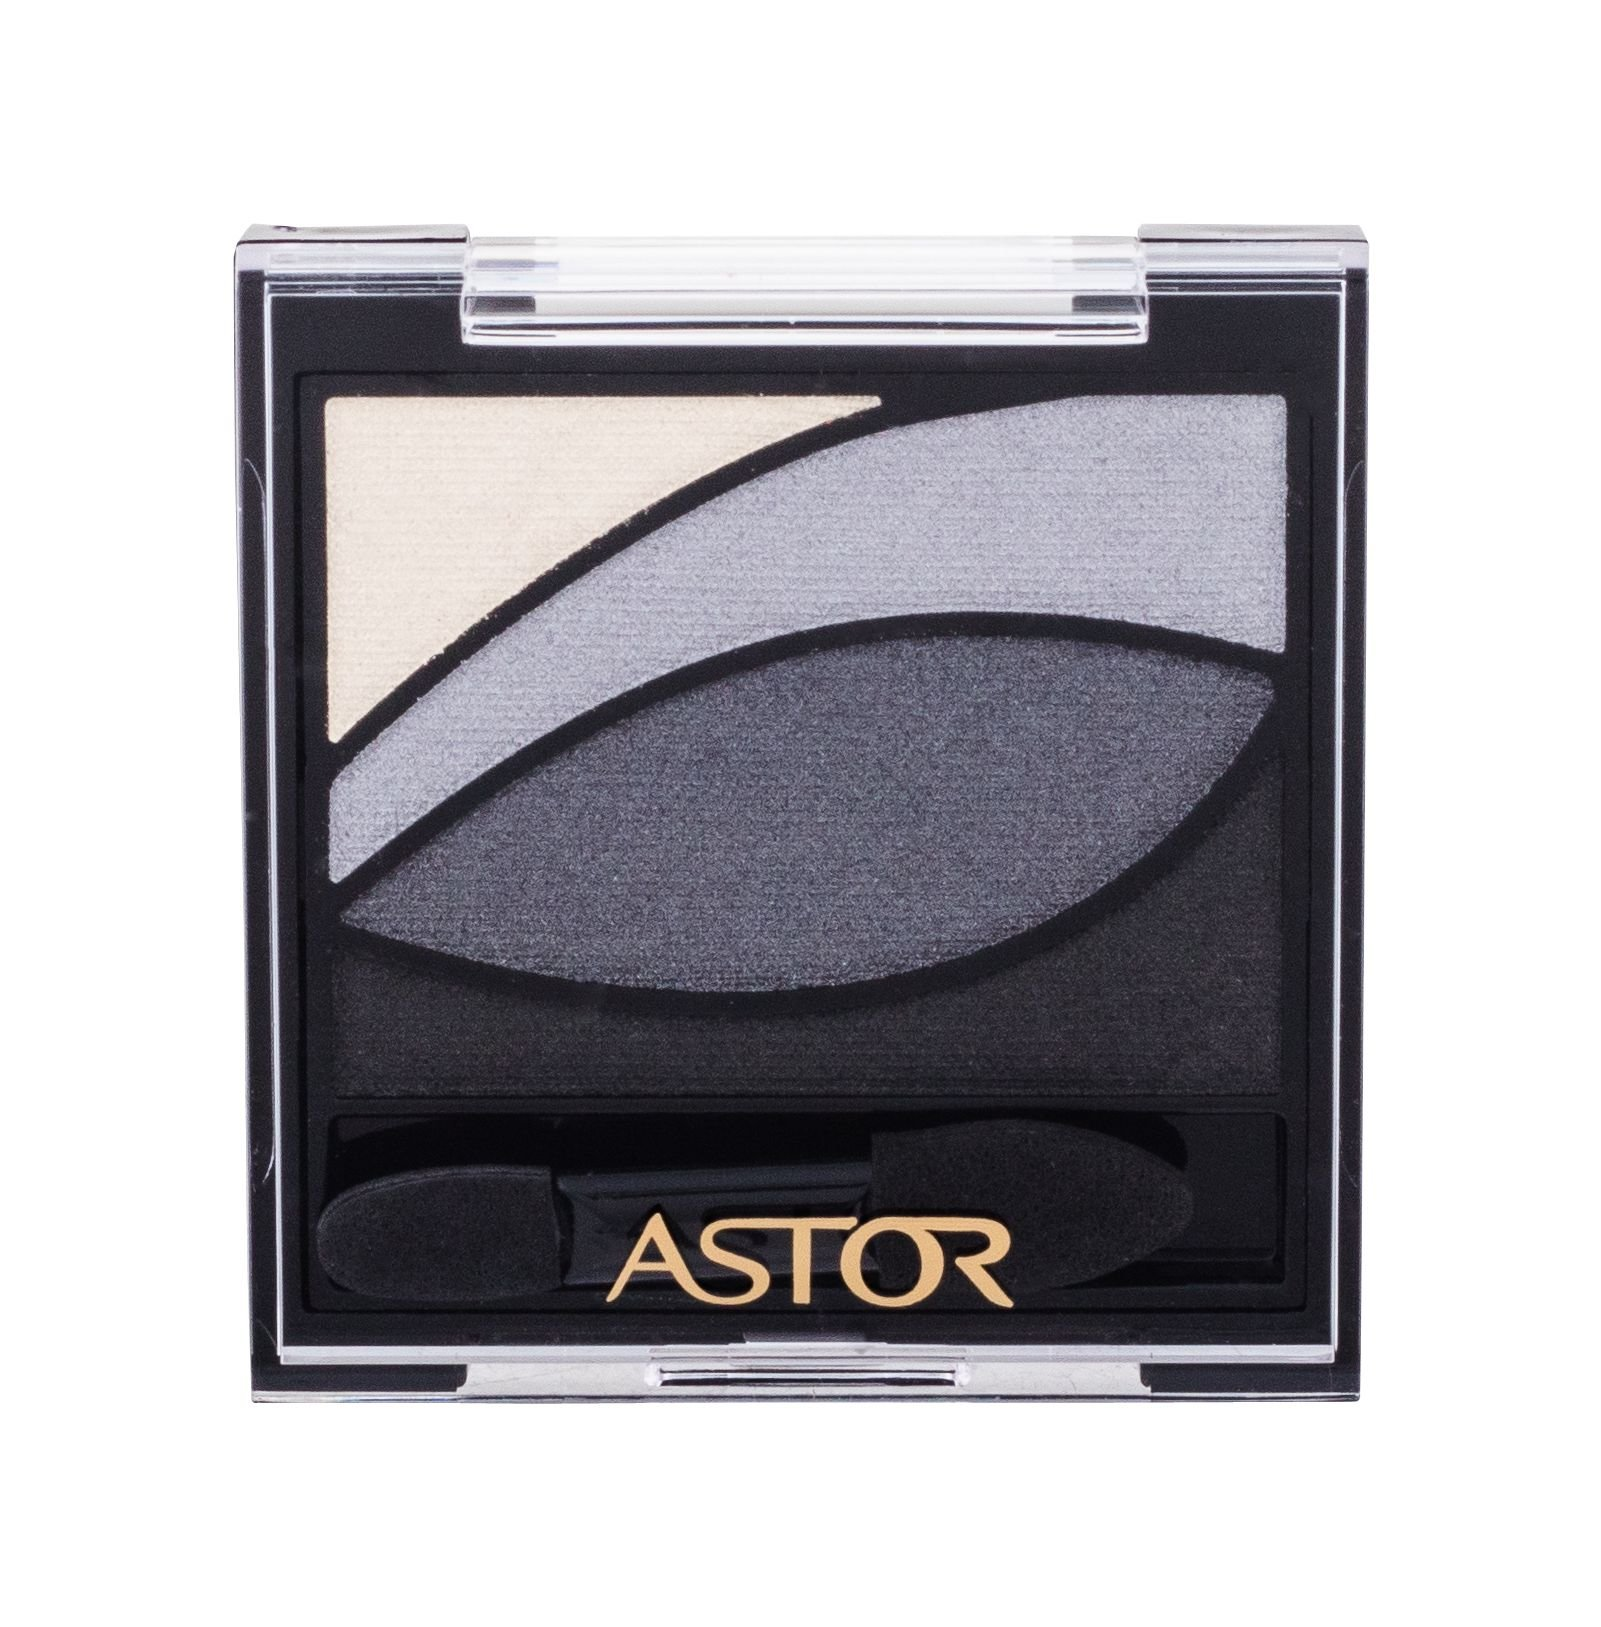 ASTOR Eye Artist Cosmetic 4ml 720 Rock Show